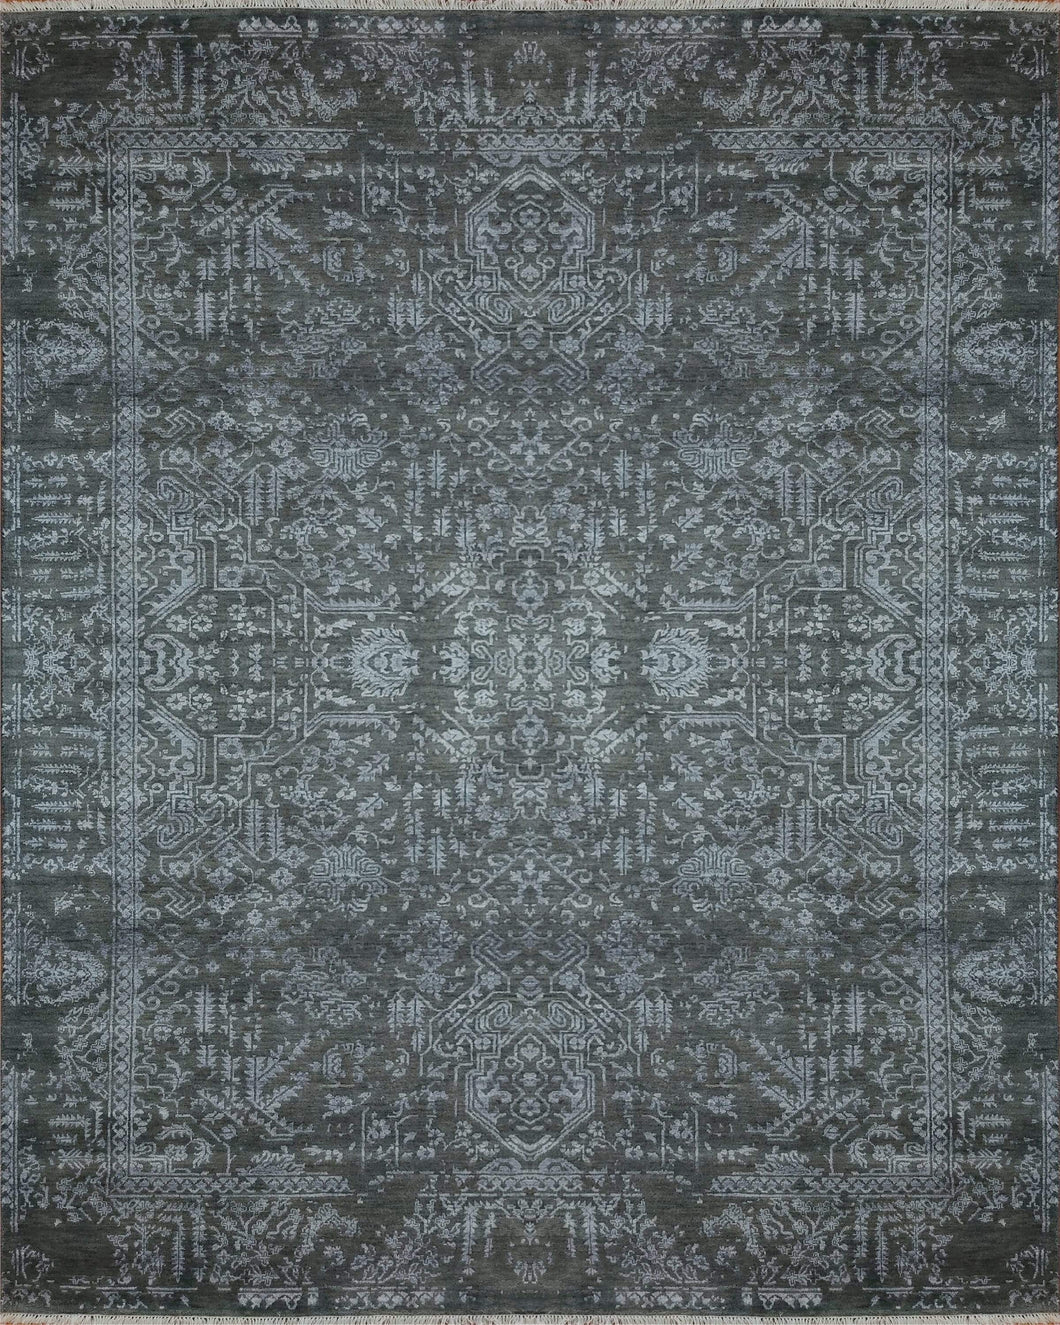 The Rugs Cafe Carpets 8x10 Blue Transitional Modern Rug for Living Room, Bedroom, Dining Room, and Office